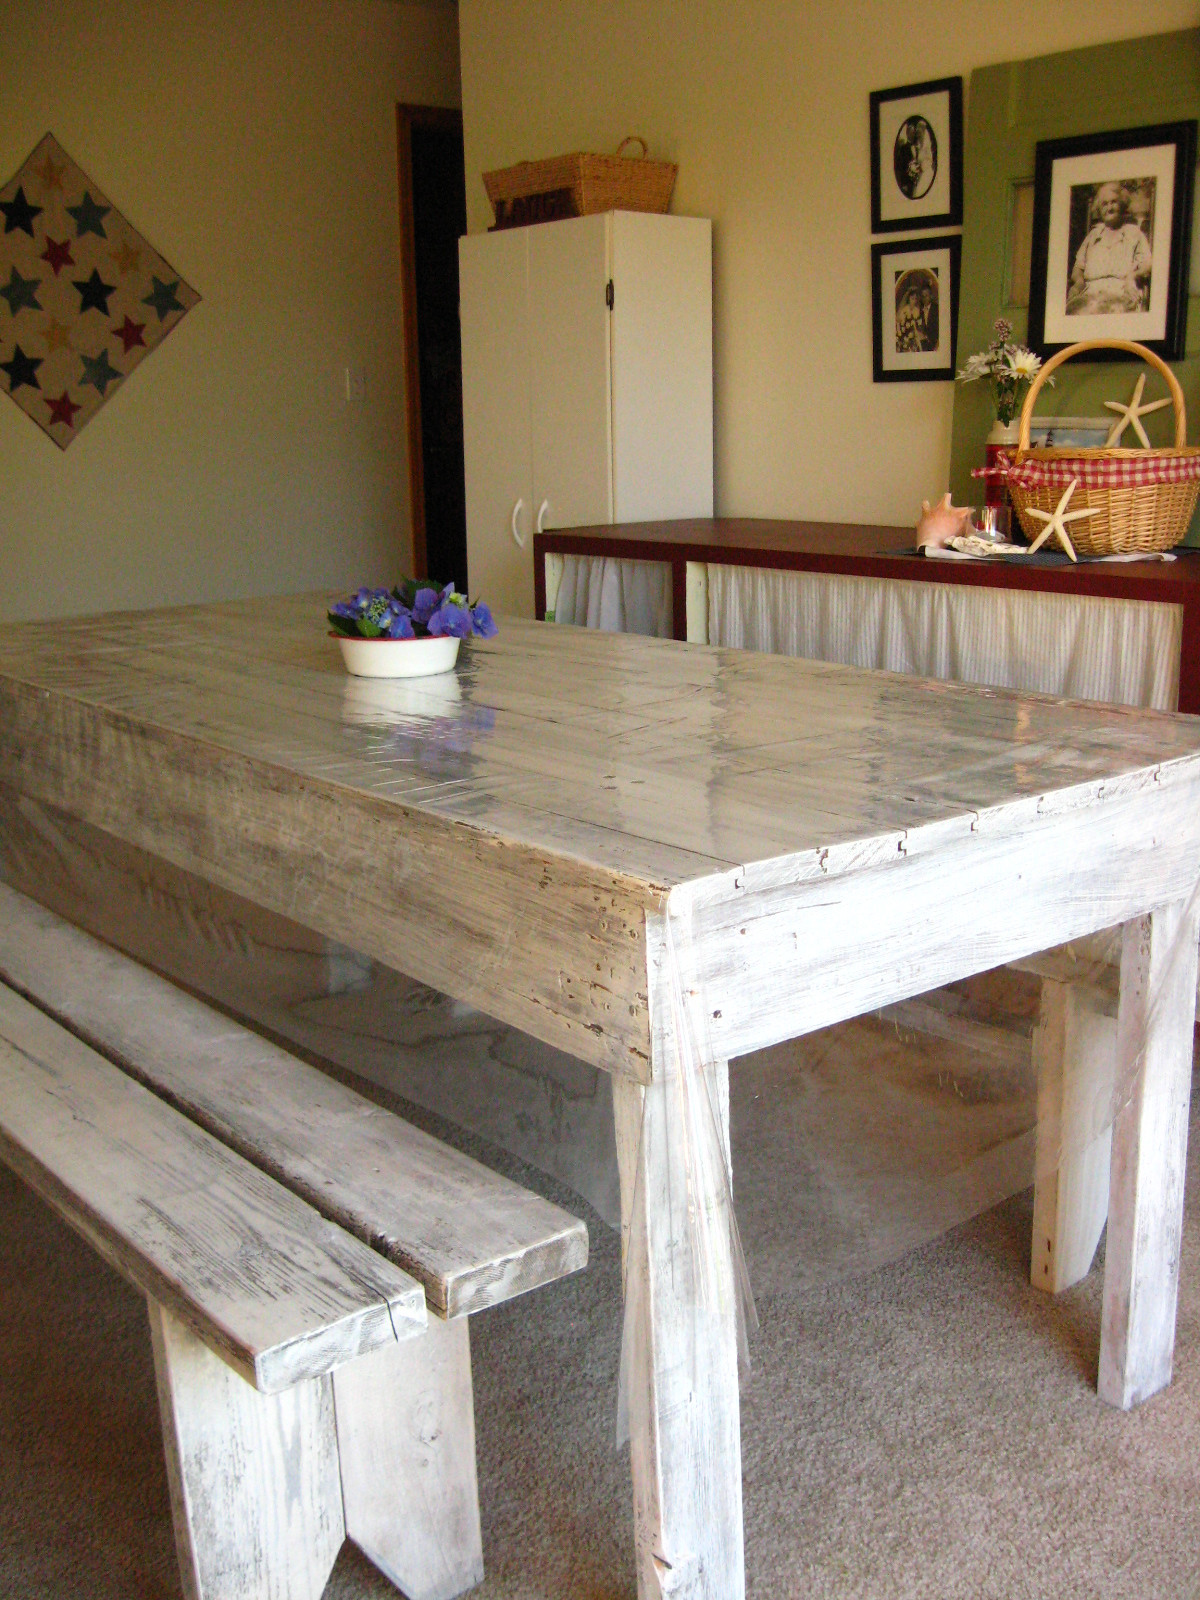 Best ideas about Shabby Chic Kitchen Table . Save or Pin Top 28 Shabby Chic Kitchen Tables drop leaf kitchen Now.